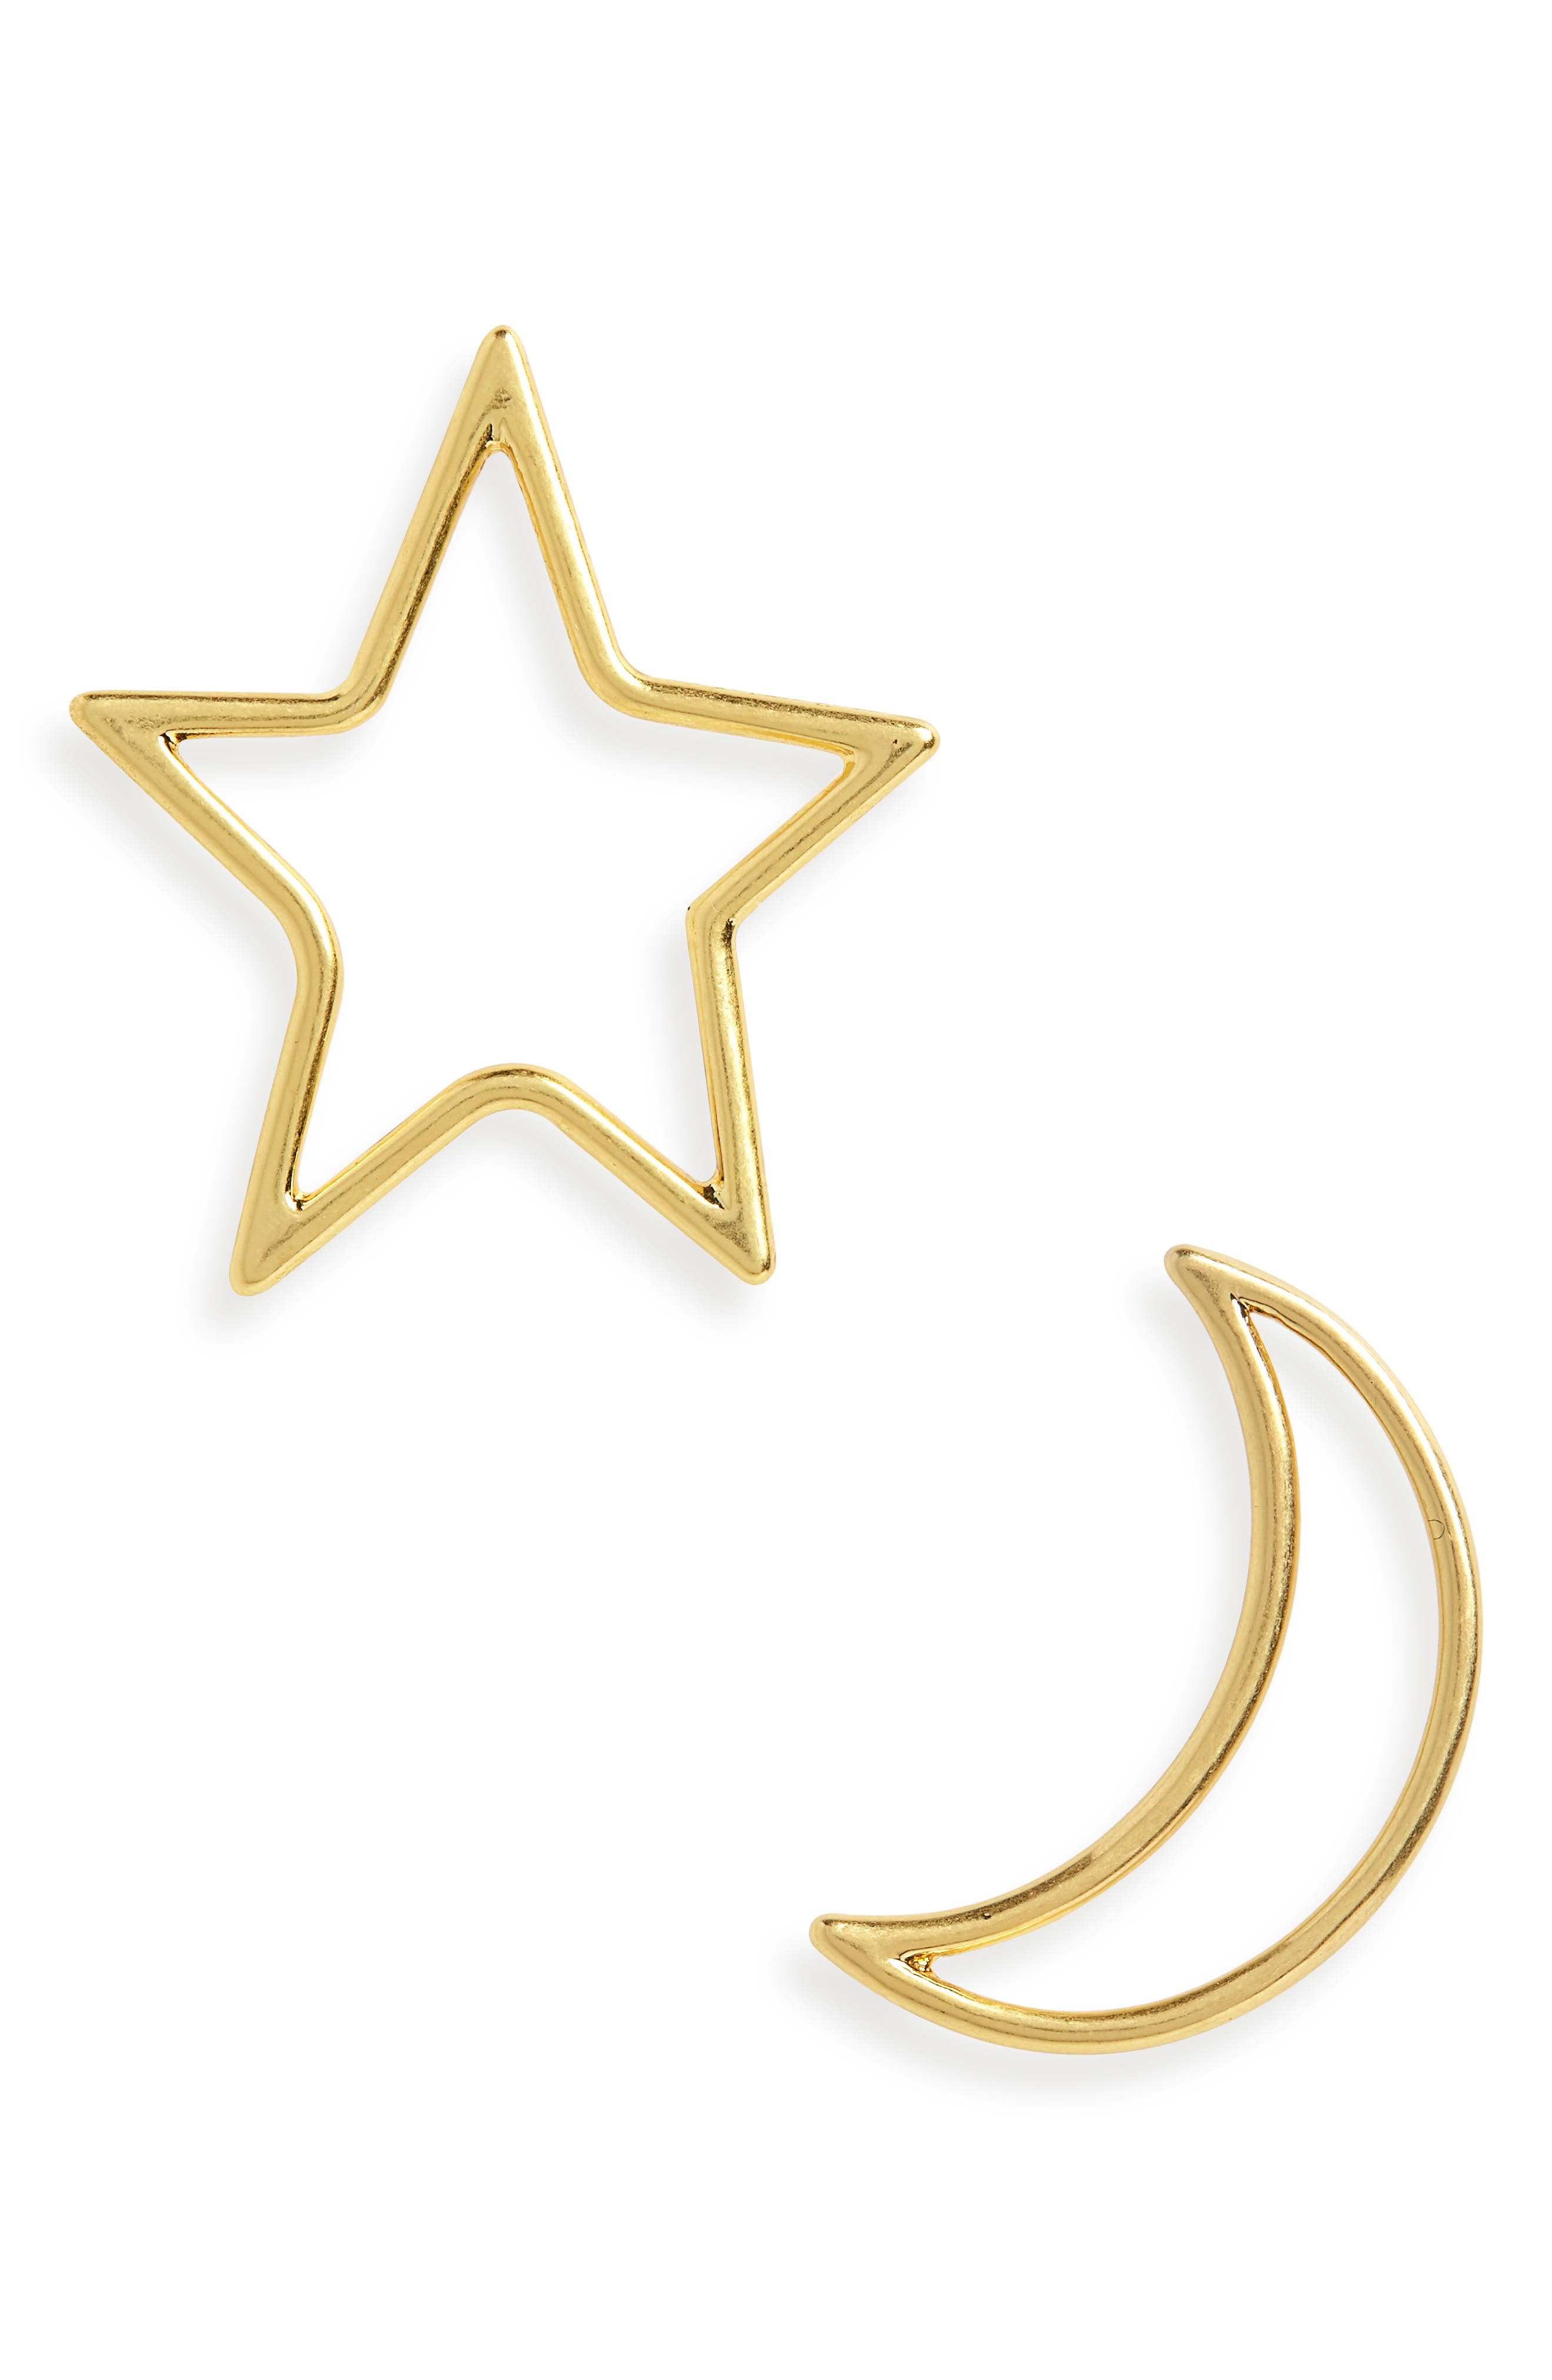 Star & Moon Statement Earrings,                         Main,                         color, VINTAGE GOLD